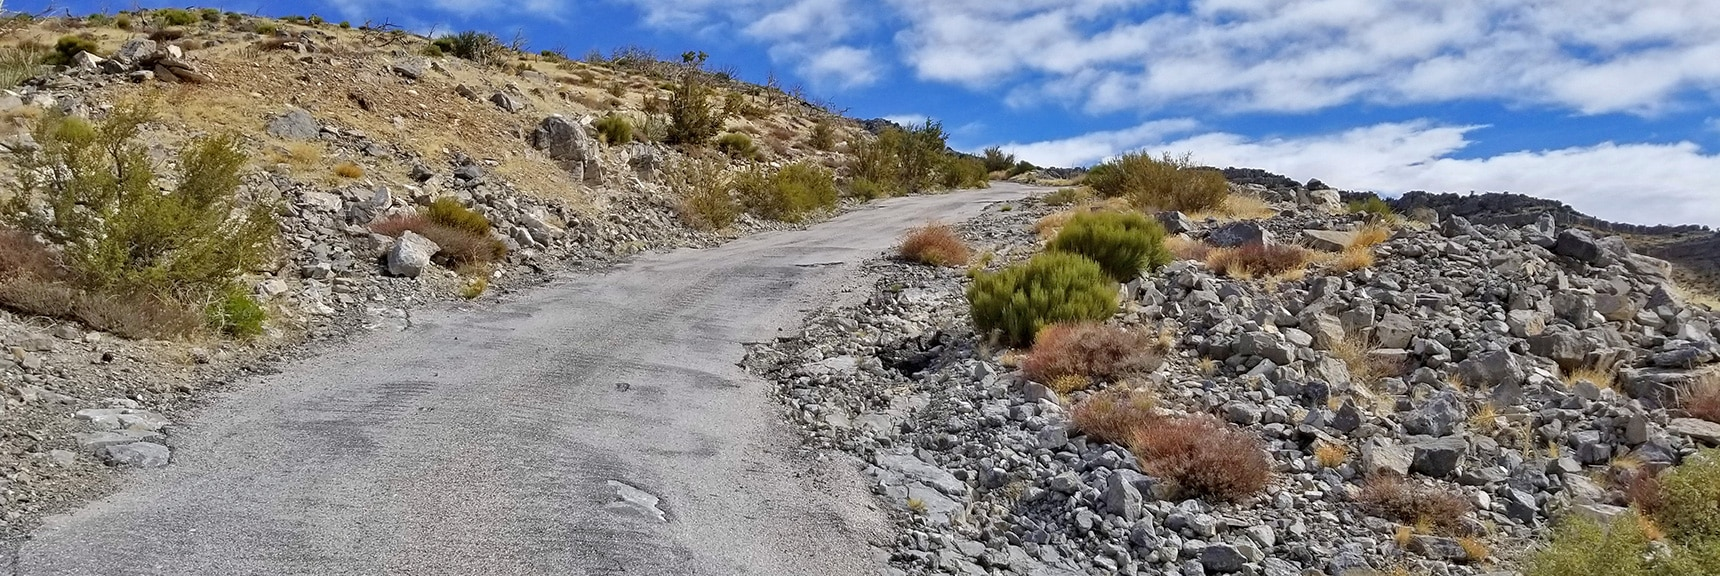 Most Steep Incline Stretches on Potosi Mountain Road are Paved | Potosi Mountain Spring Mountains Nevada